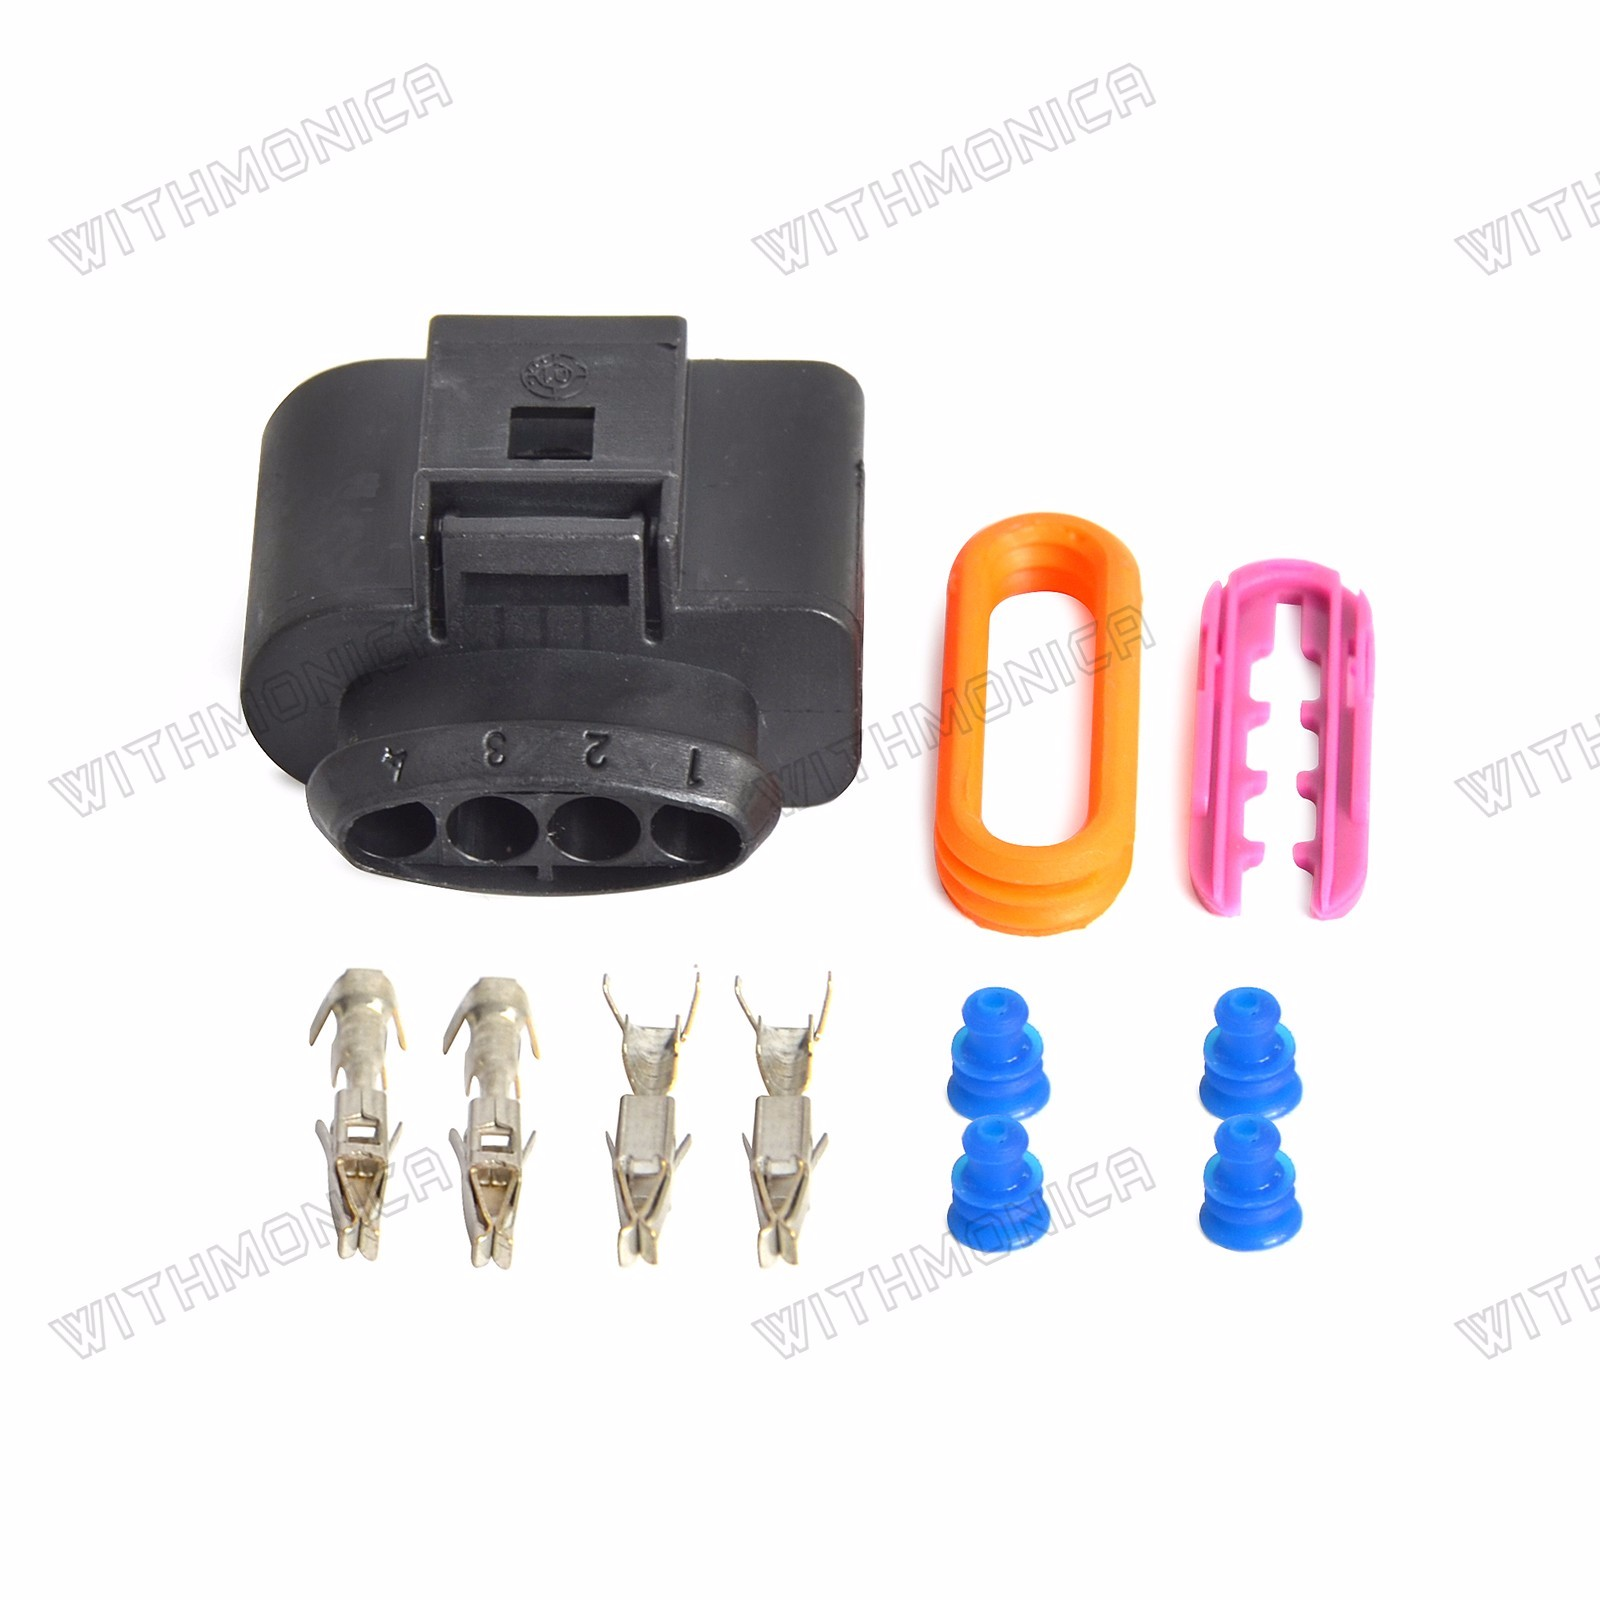 WI pr023_(2) audi vw ignition coil wiring harness connector repair kit a4 a6 a8  at fashall.co